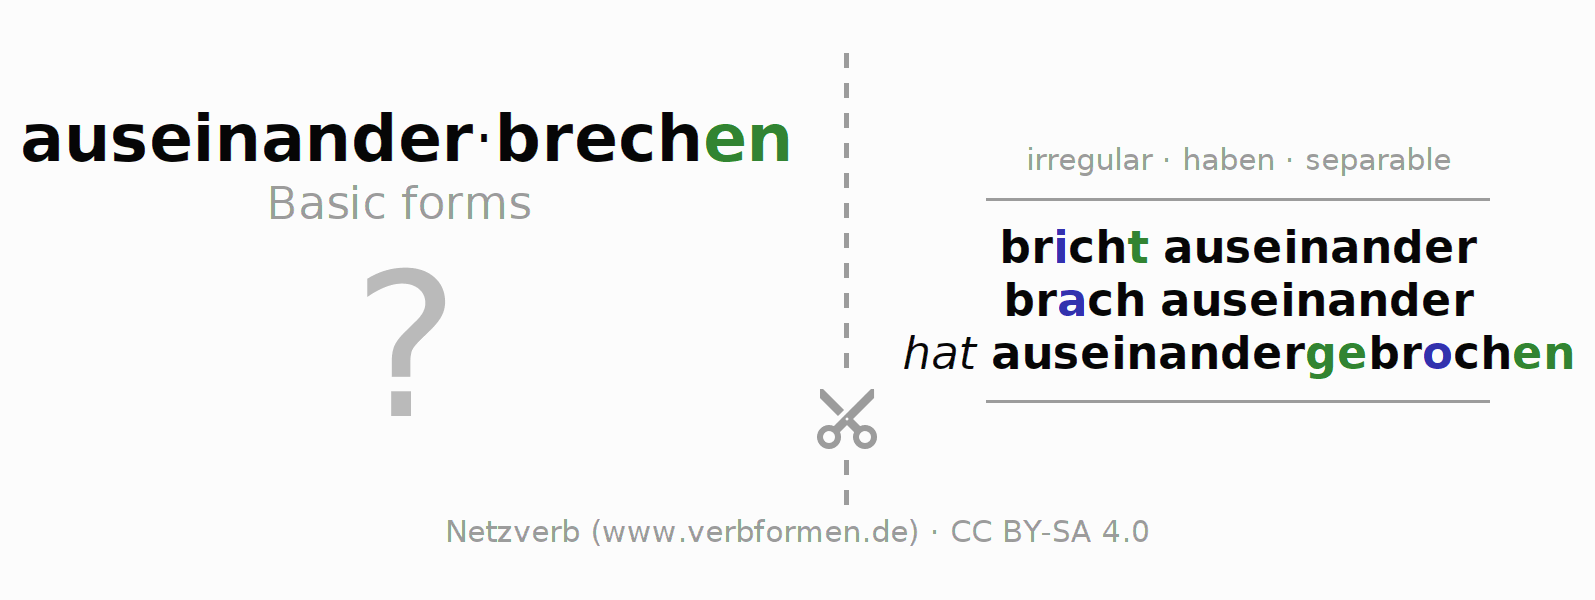 Flash cards for the conjugation of the verb auseinanderbrechen (hat)